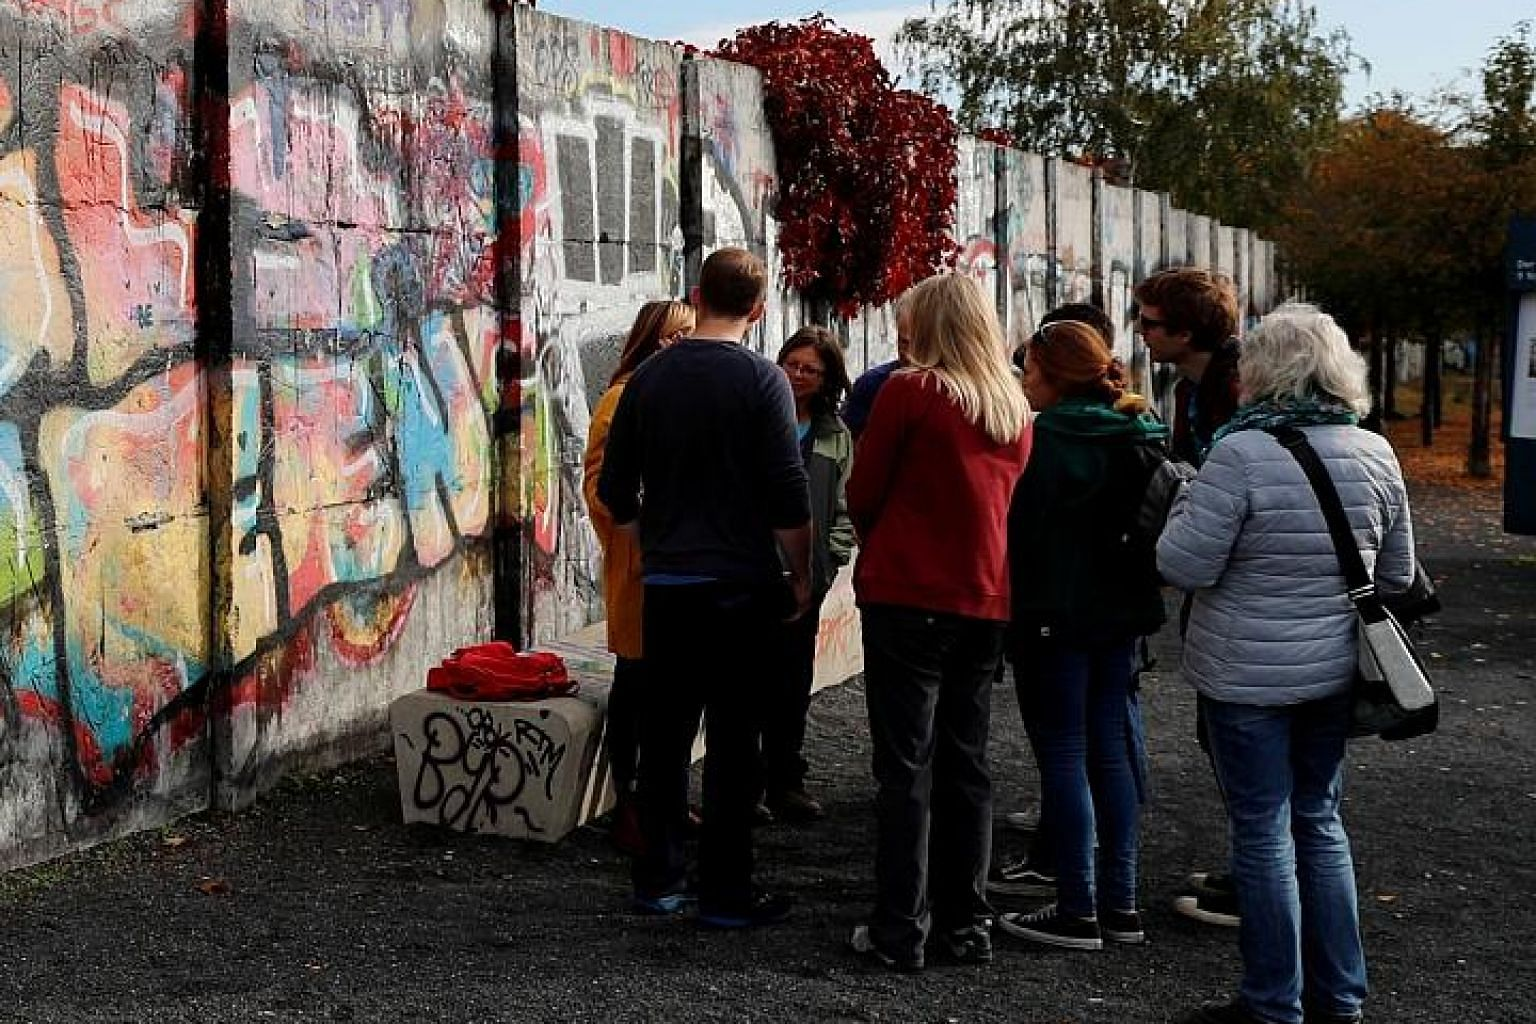 Remains of the Berlin Wall at the former Bornholmer Strasse border crossing. Frustration and nostalgia for a rose-tinted past are fuelling the rise in support for parties of the far left and right today, says the writer.